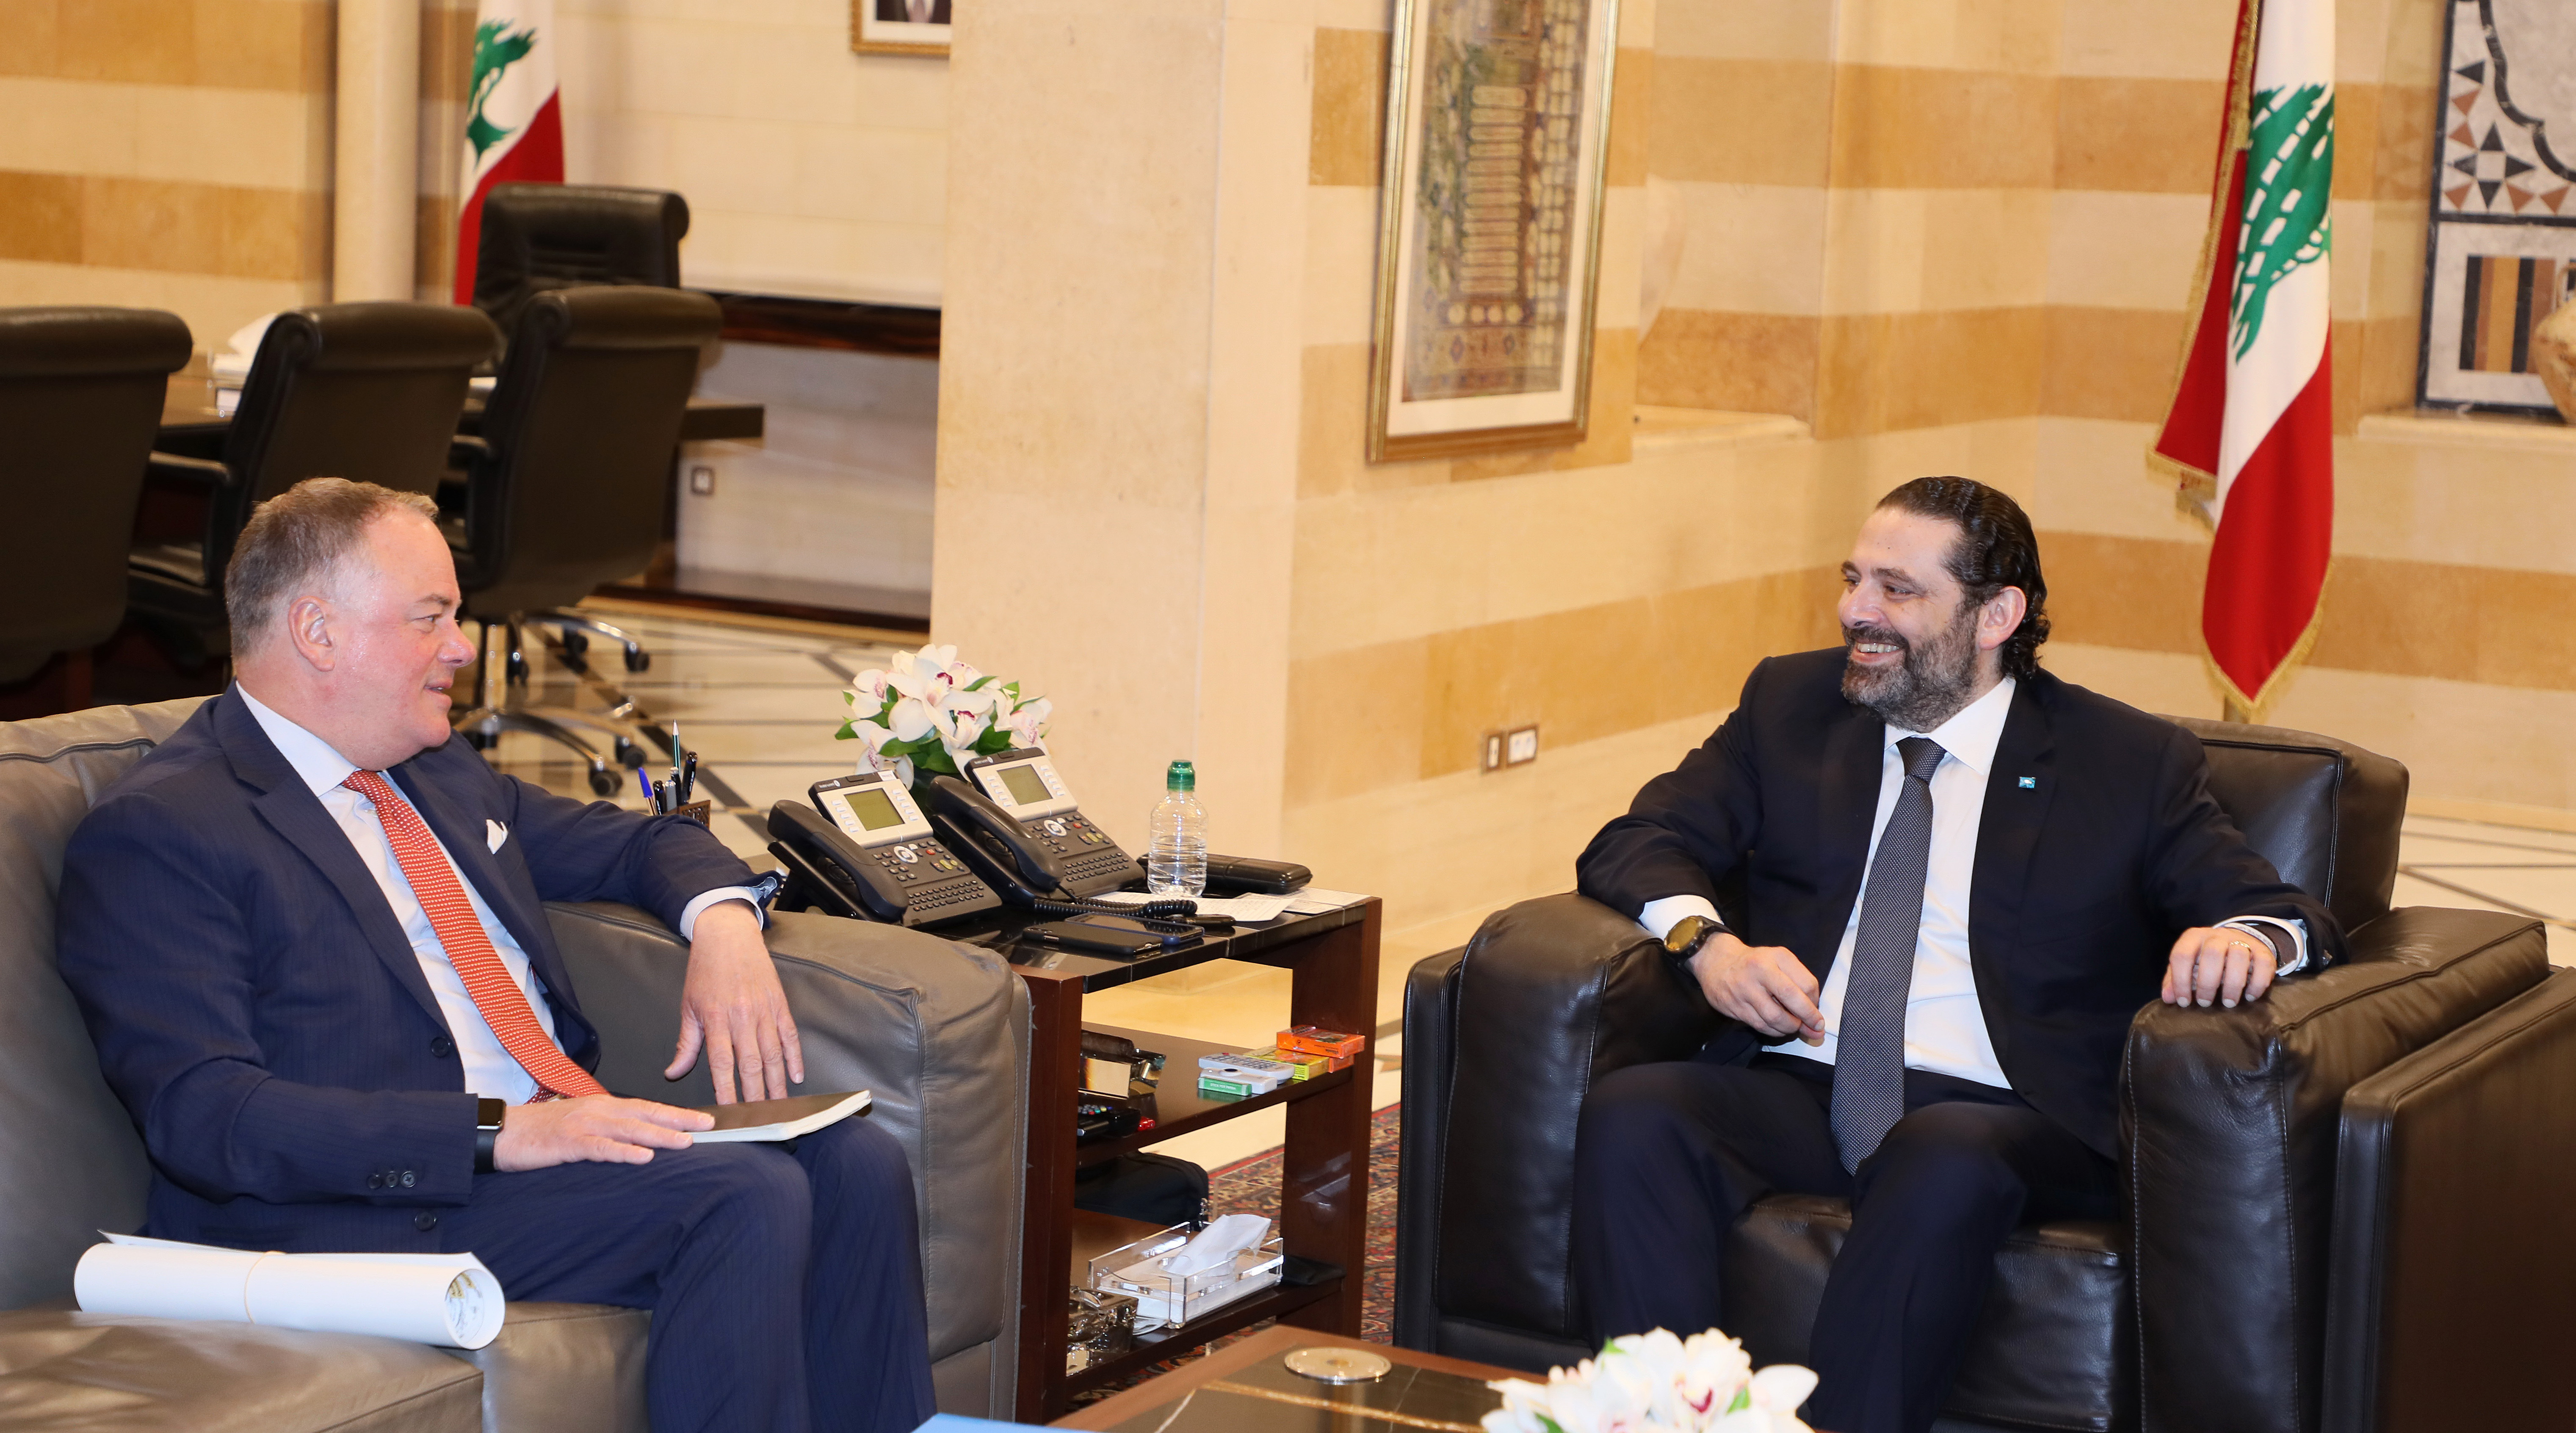 Pr Minister Saad Hariri meets Head of UNIFEL with a Delegation 1